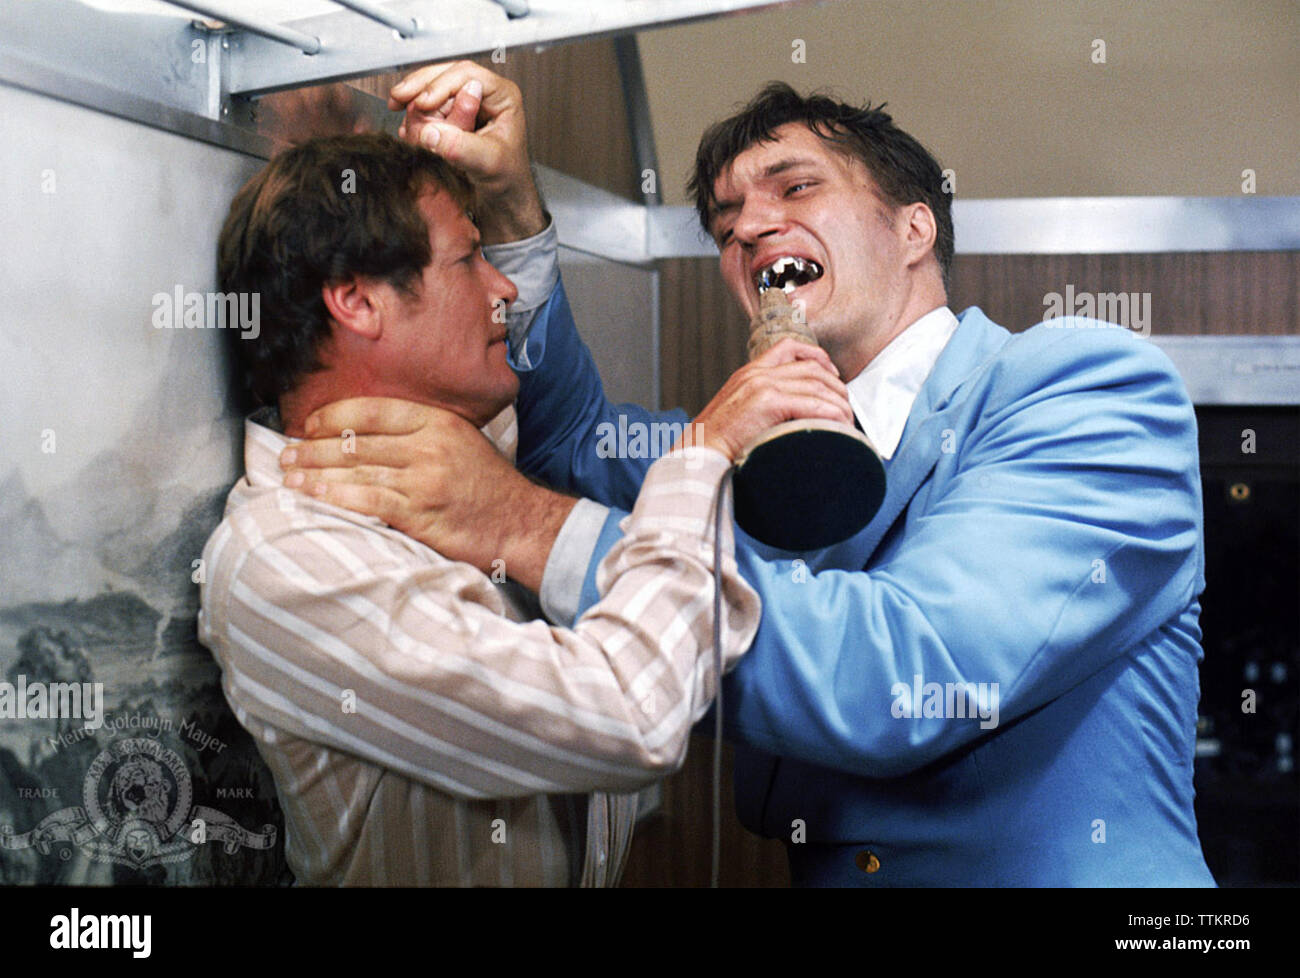 THE SPY WHO LOVED ME 1977 Eon Films production with Roger Moore at left and Richard Kiel as Jaws - Stock Image